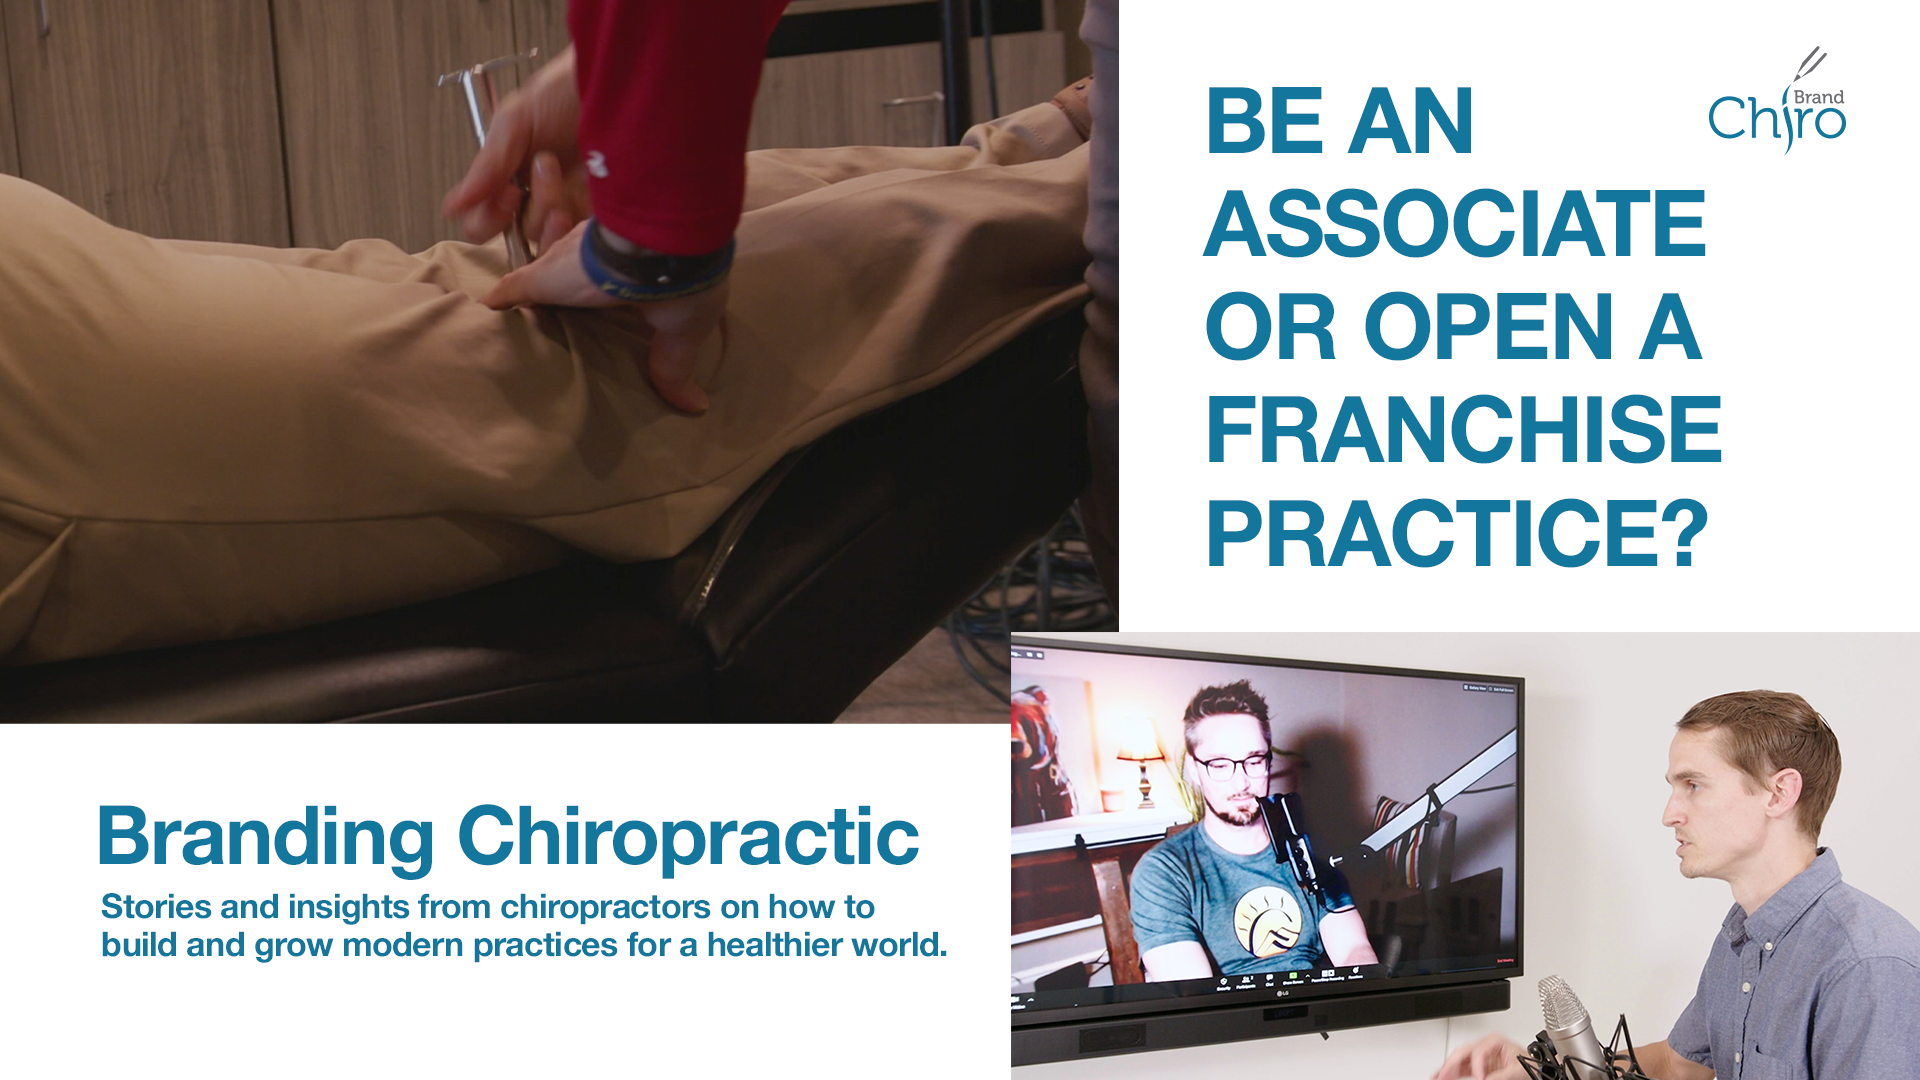 Welcome to Branding Chiropractic, a series of conversations with chiropractors on what it takes to build a successful practice. We talk with Dr. Chris Odom of 100% Chiropractic about his 10-year journey from being an associate chiropractor at several practices, to opening his own office. He discusses what it's like to open a chiropractic franchise with 100% Chiropractic.